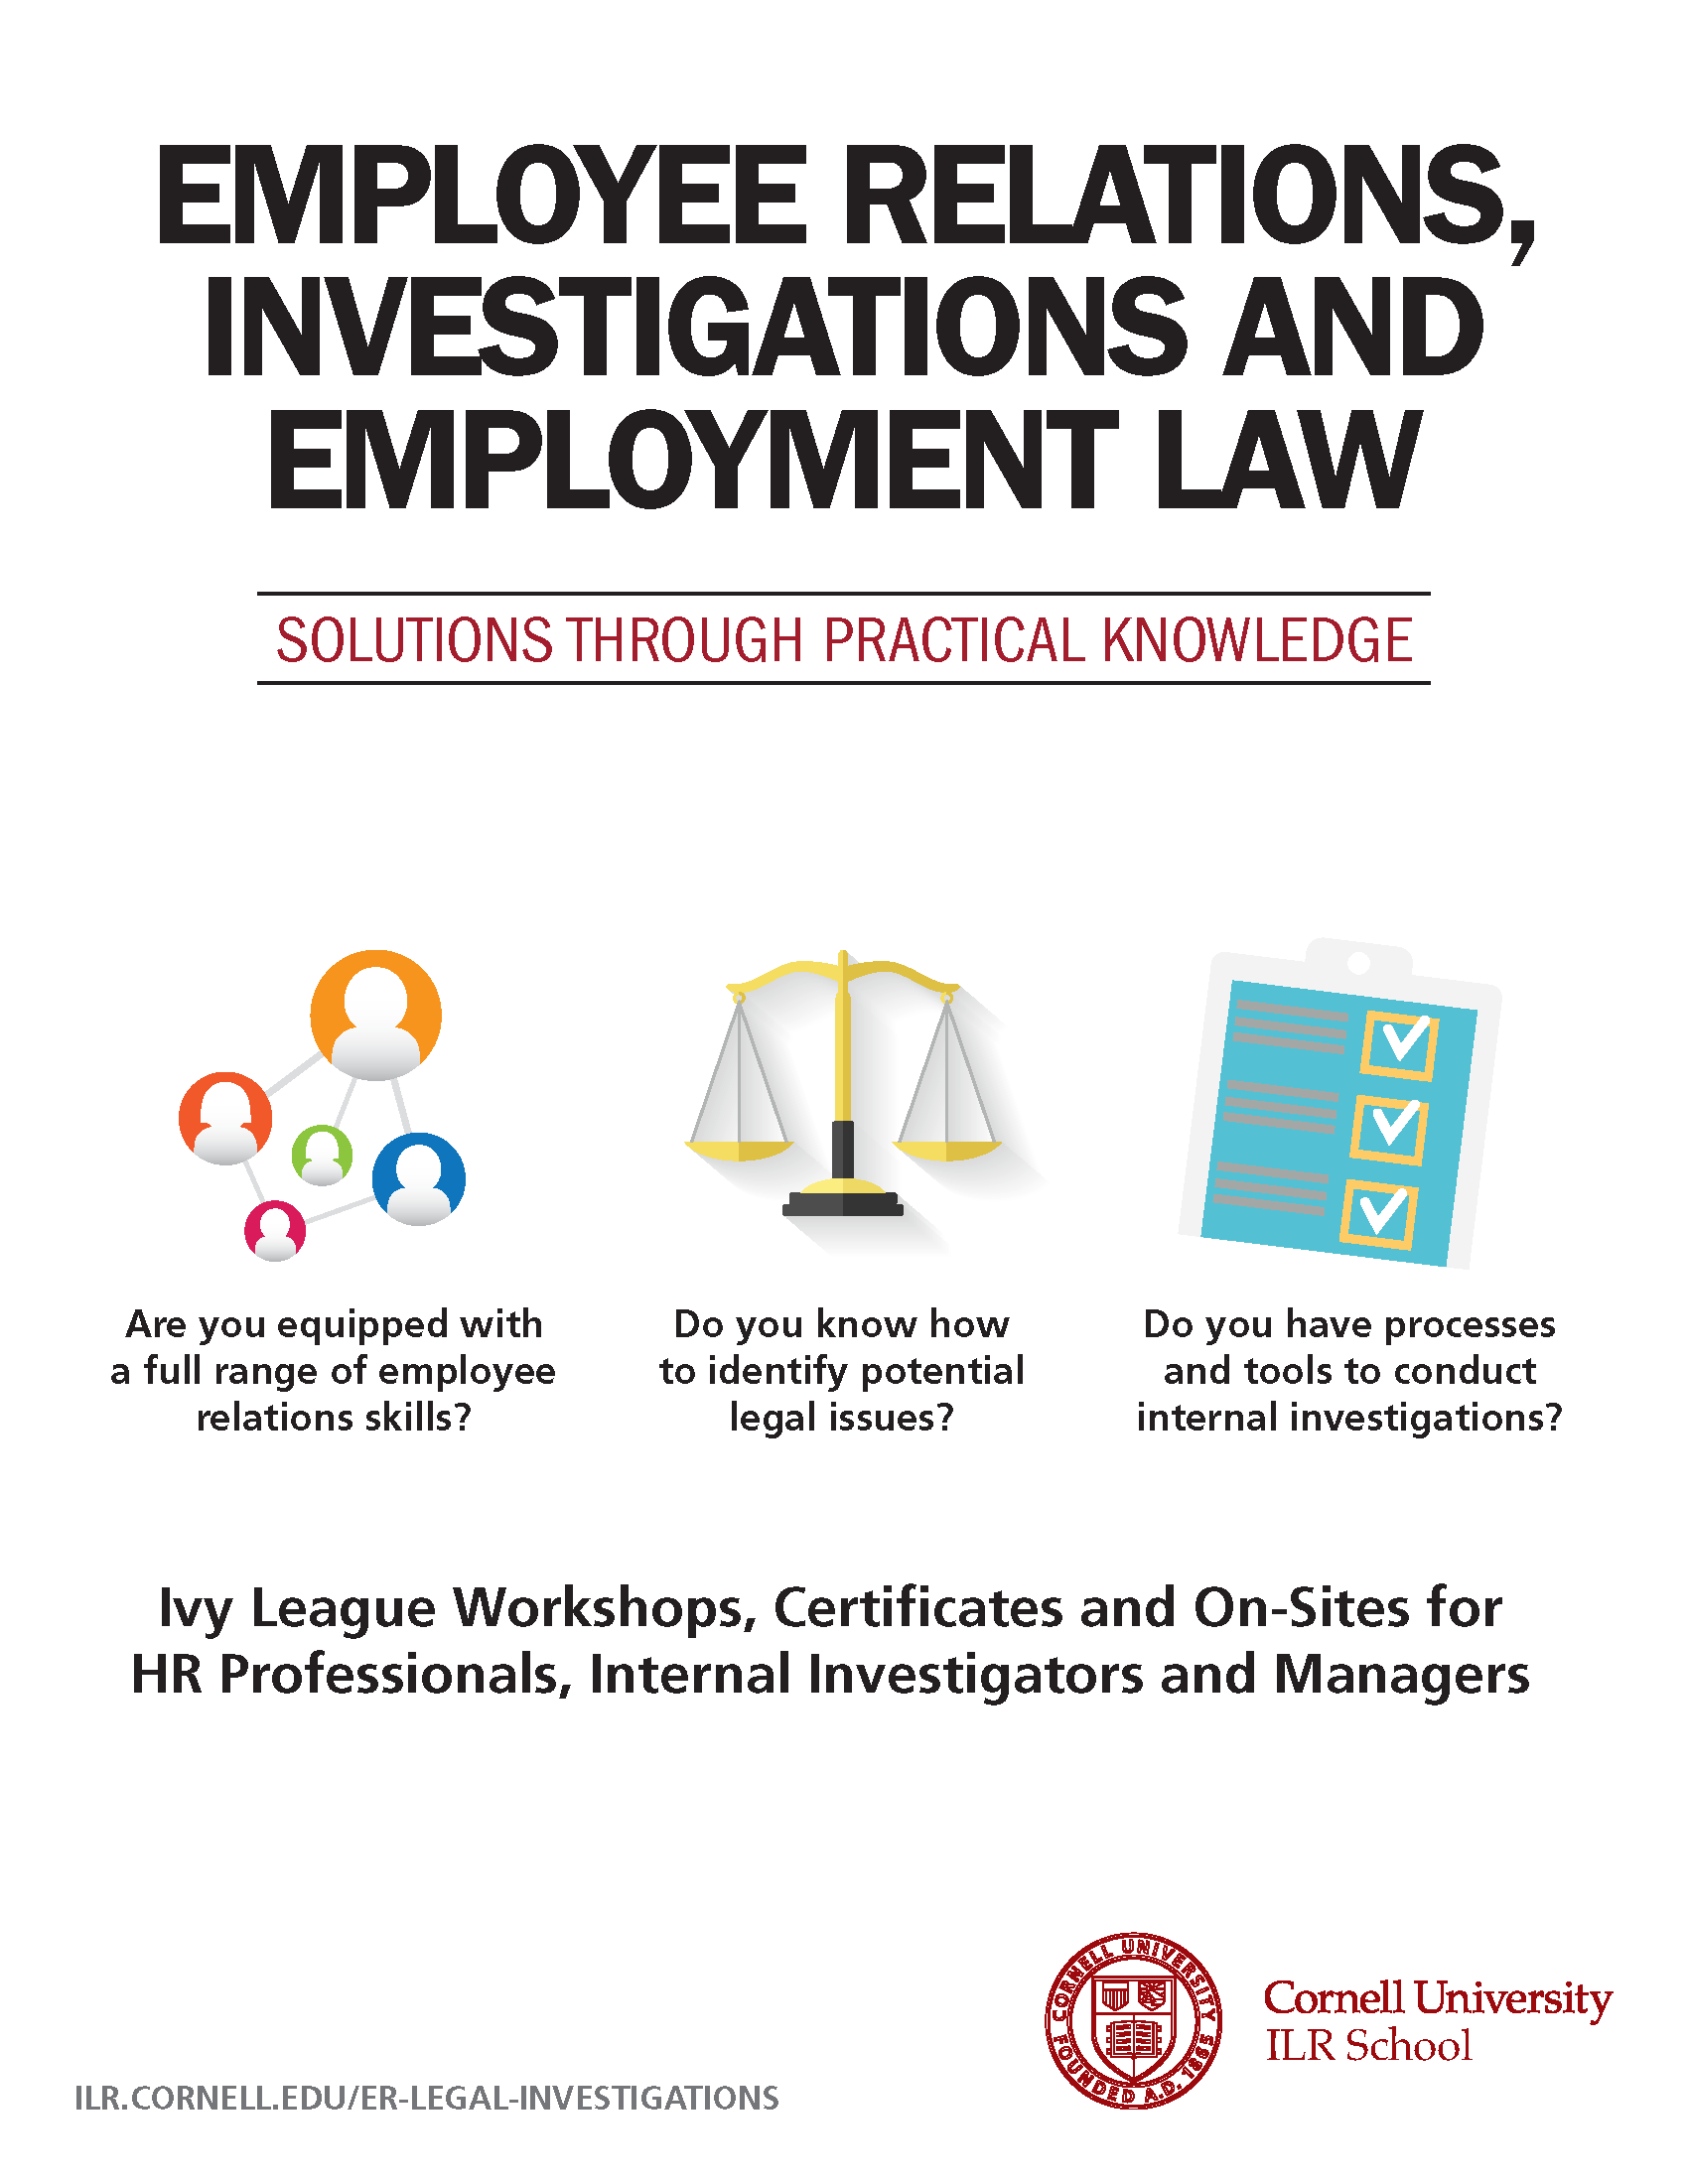 advanced employee relations and investigations certificate the ilr